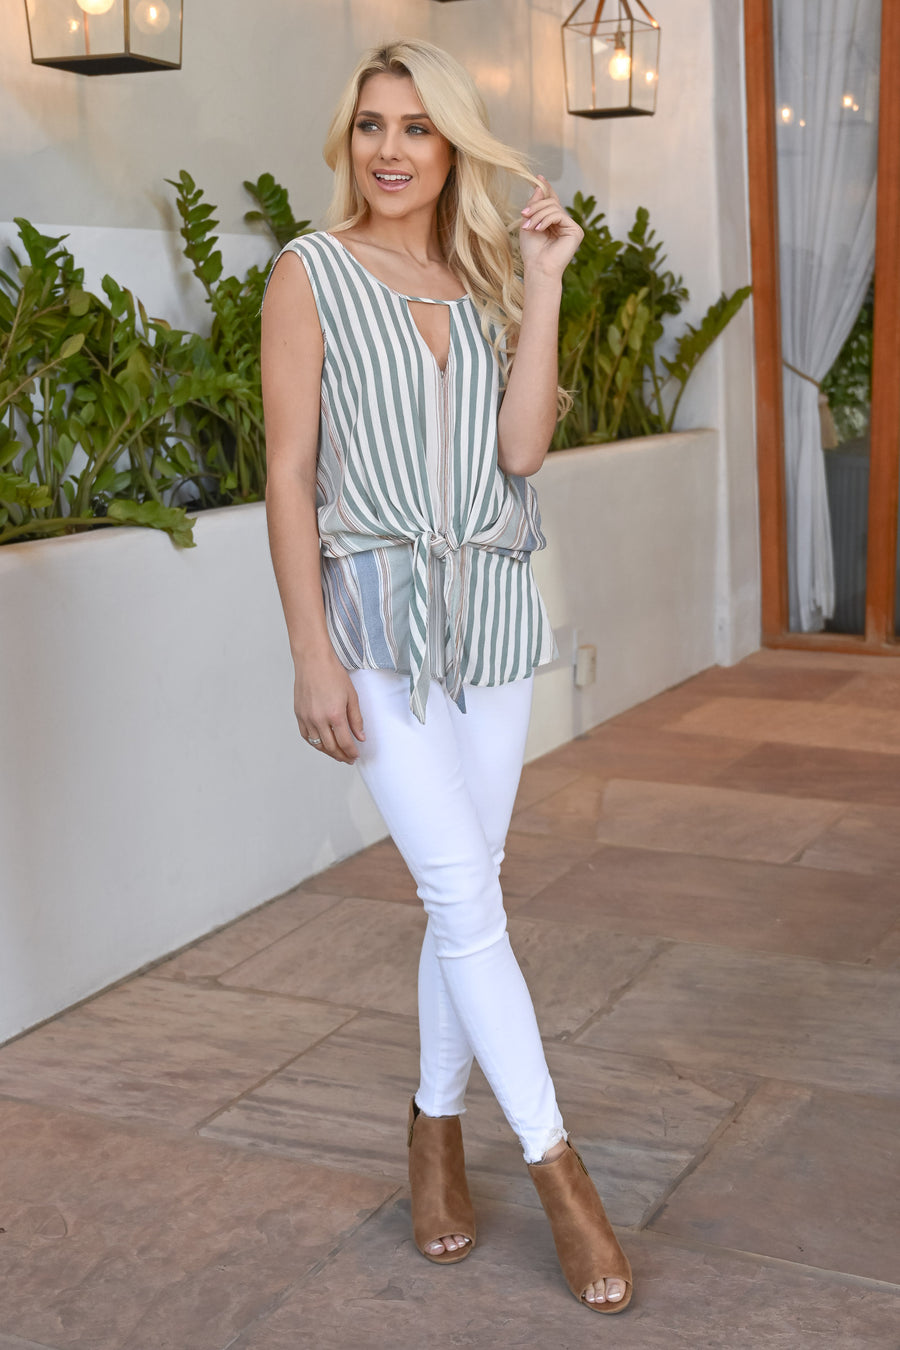 Picture This Striped Top - Sage women's striped print, backless, tie-front top, Closet Candy Boutique 1